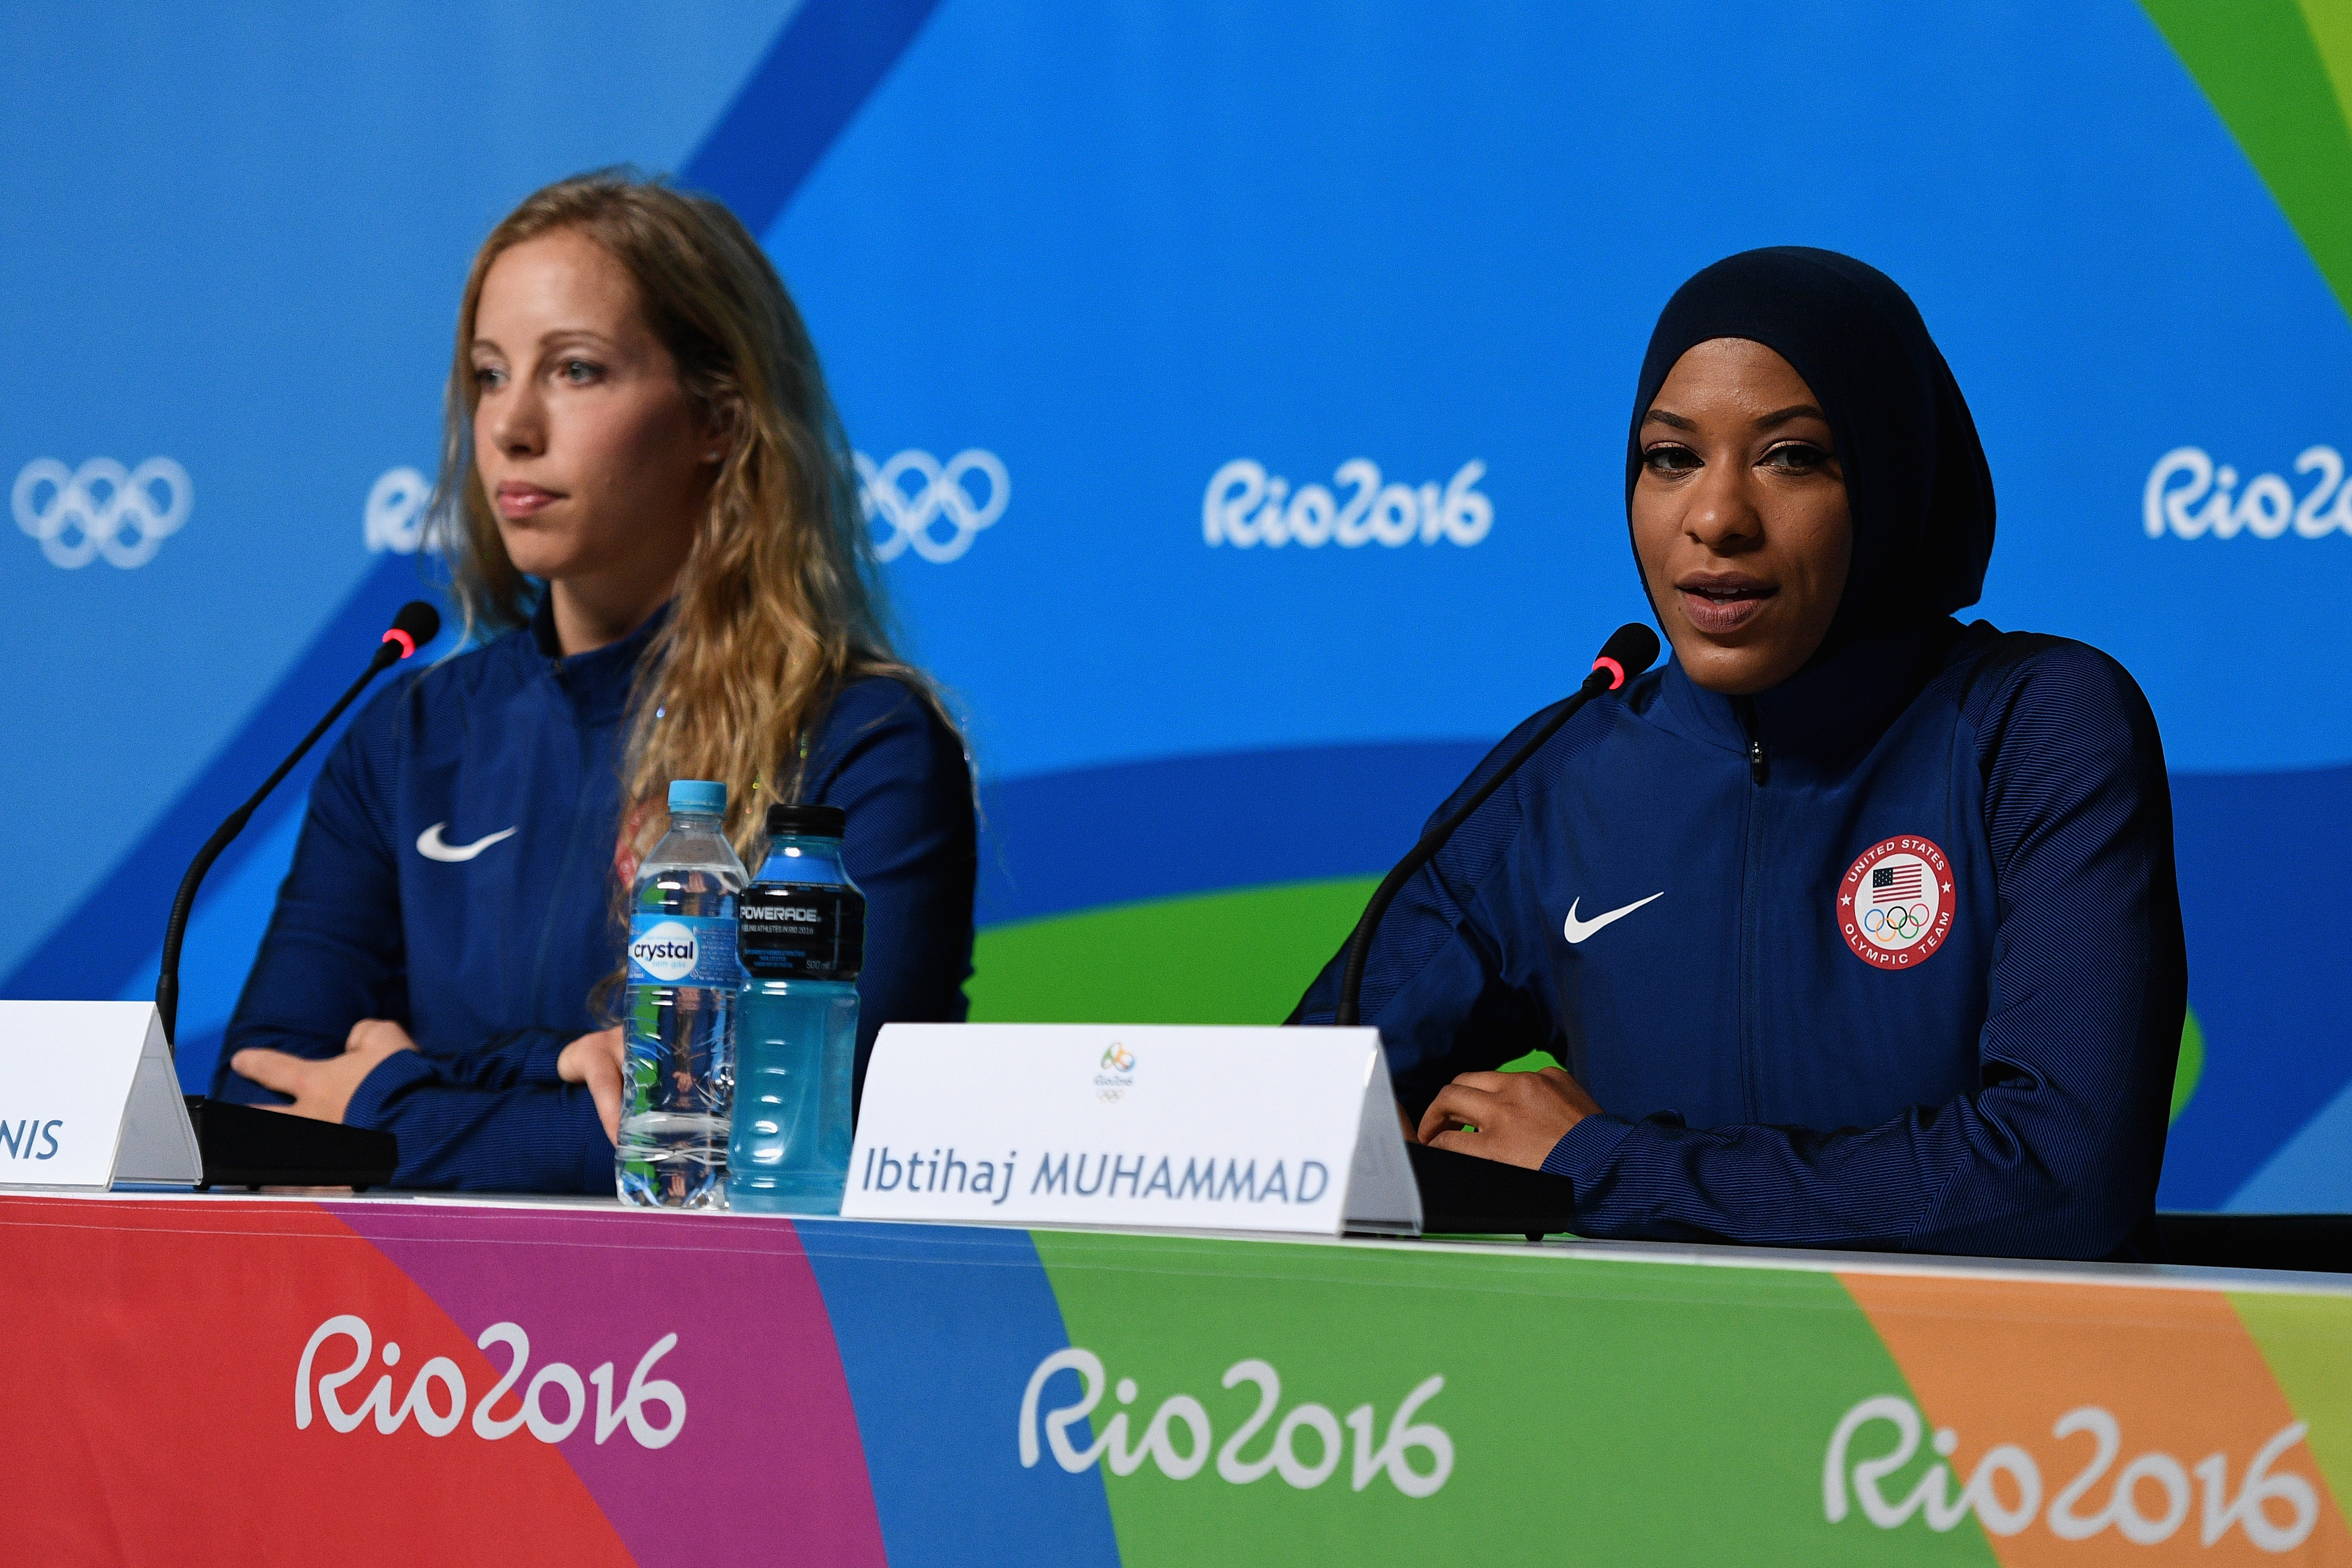 RIO DE JANEIRO, BRAZIL - AUGUST 04: (L-R) American Olympic fencers Mariel Zagunis and Ibtihaj Muhammad face the media during a press conference on August 4, 2016 in Rio de Janeiro, Brazil. (Photo by David Ramos/Getty Images)